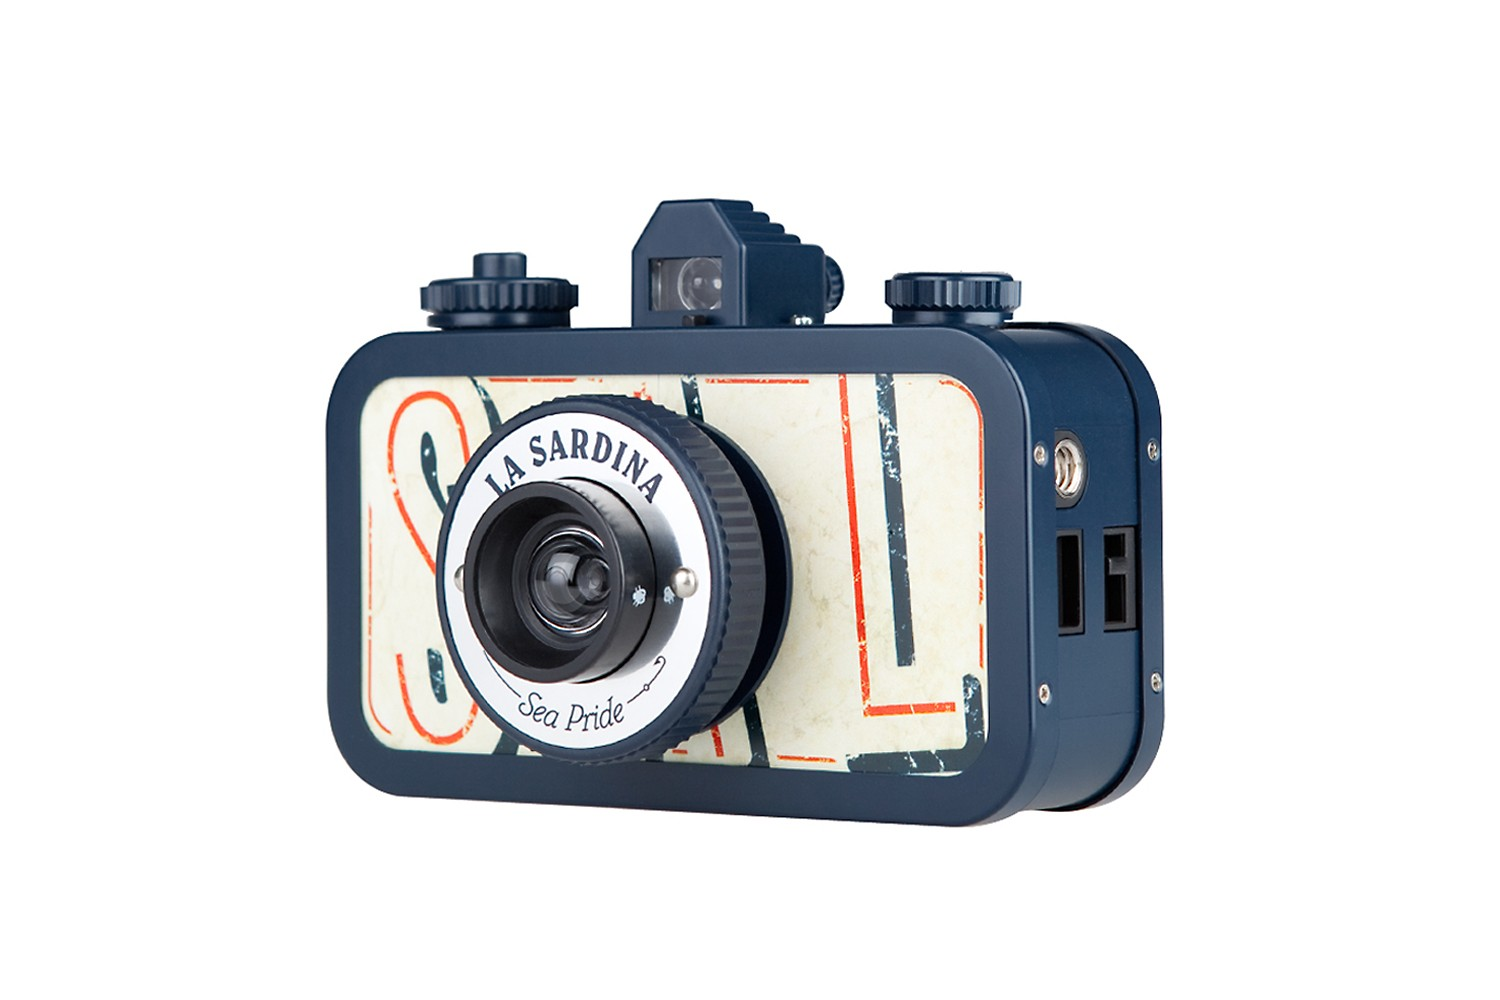 La Sardina Camera Sea Pride Single